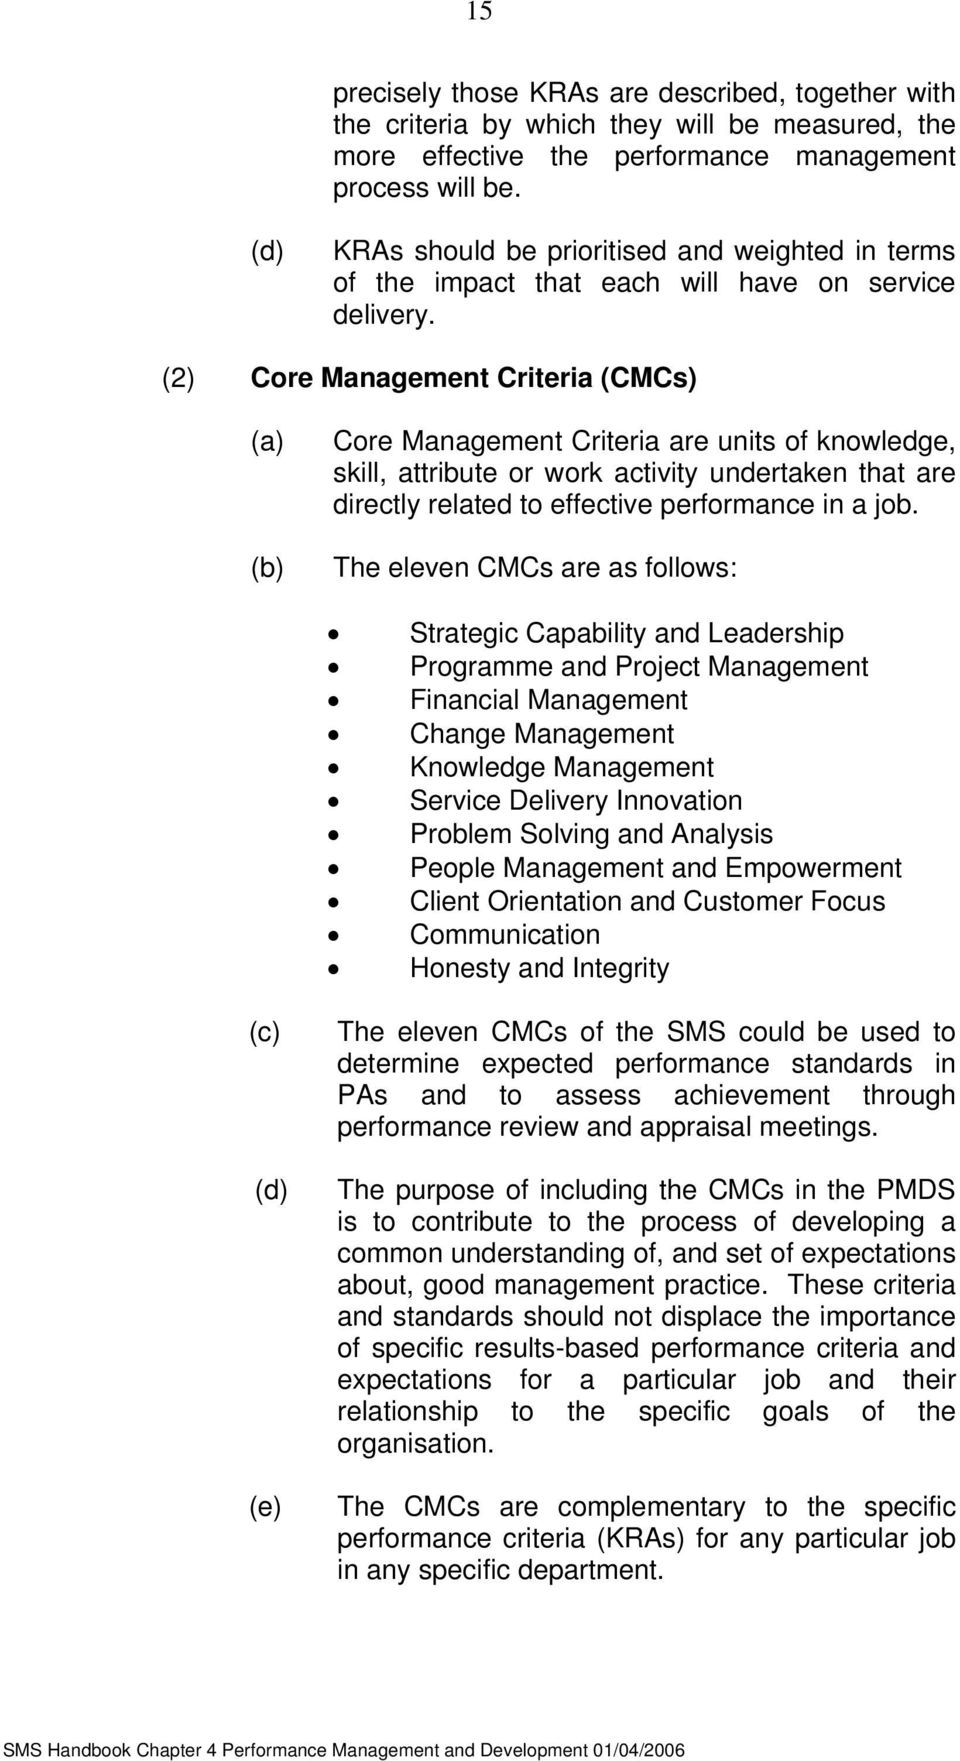 (2) Core Management Criteria (CMCs) Core Management Criteria are units of knowledge, skill, attribute or work activity undertaken that are directly related to effective performance in a job.